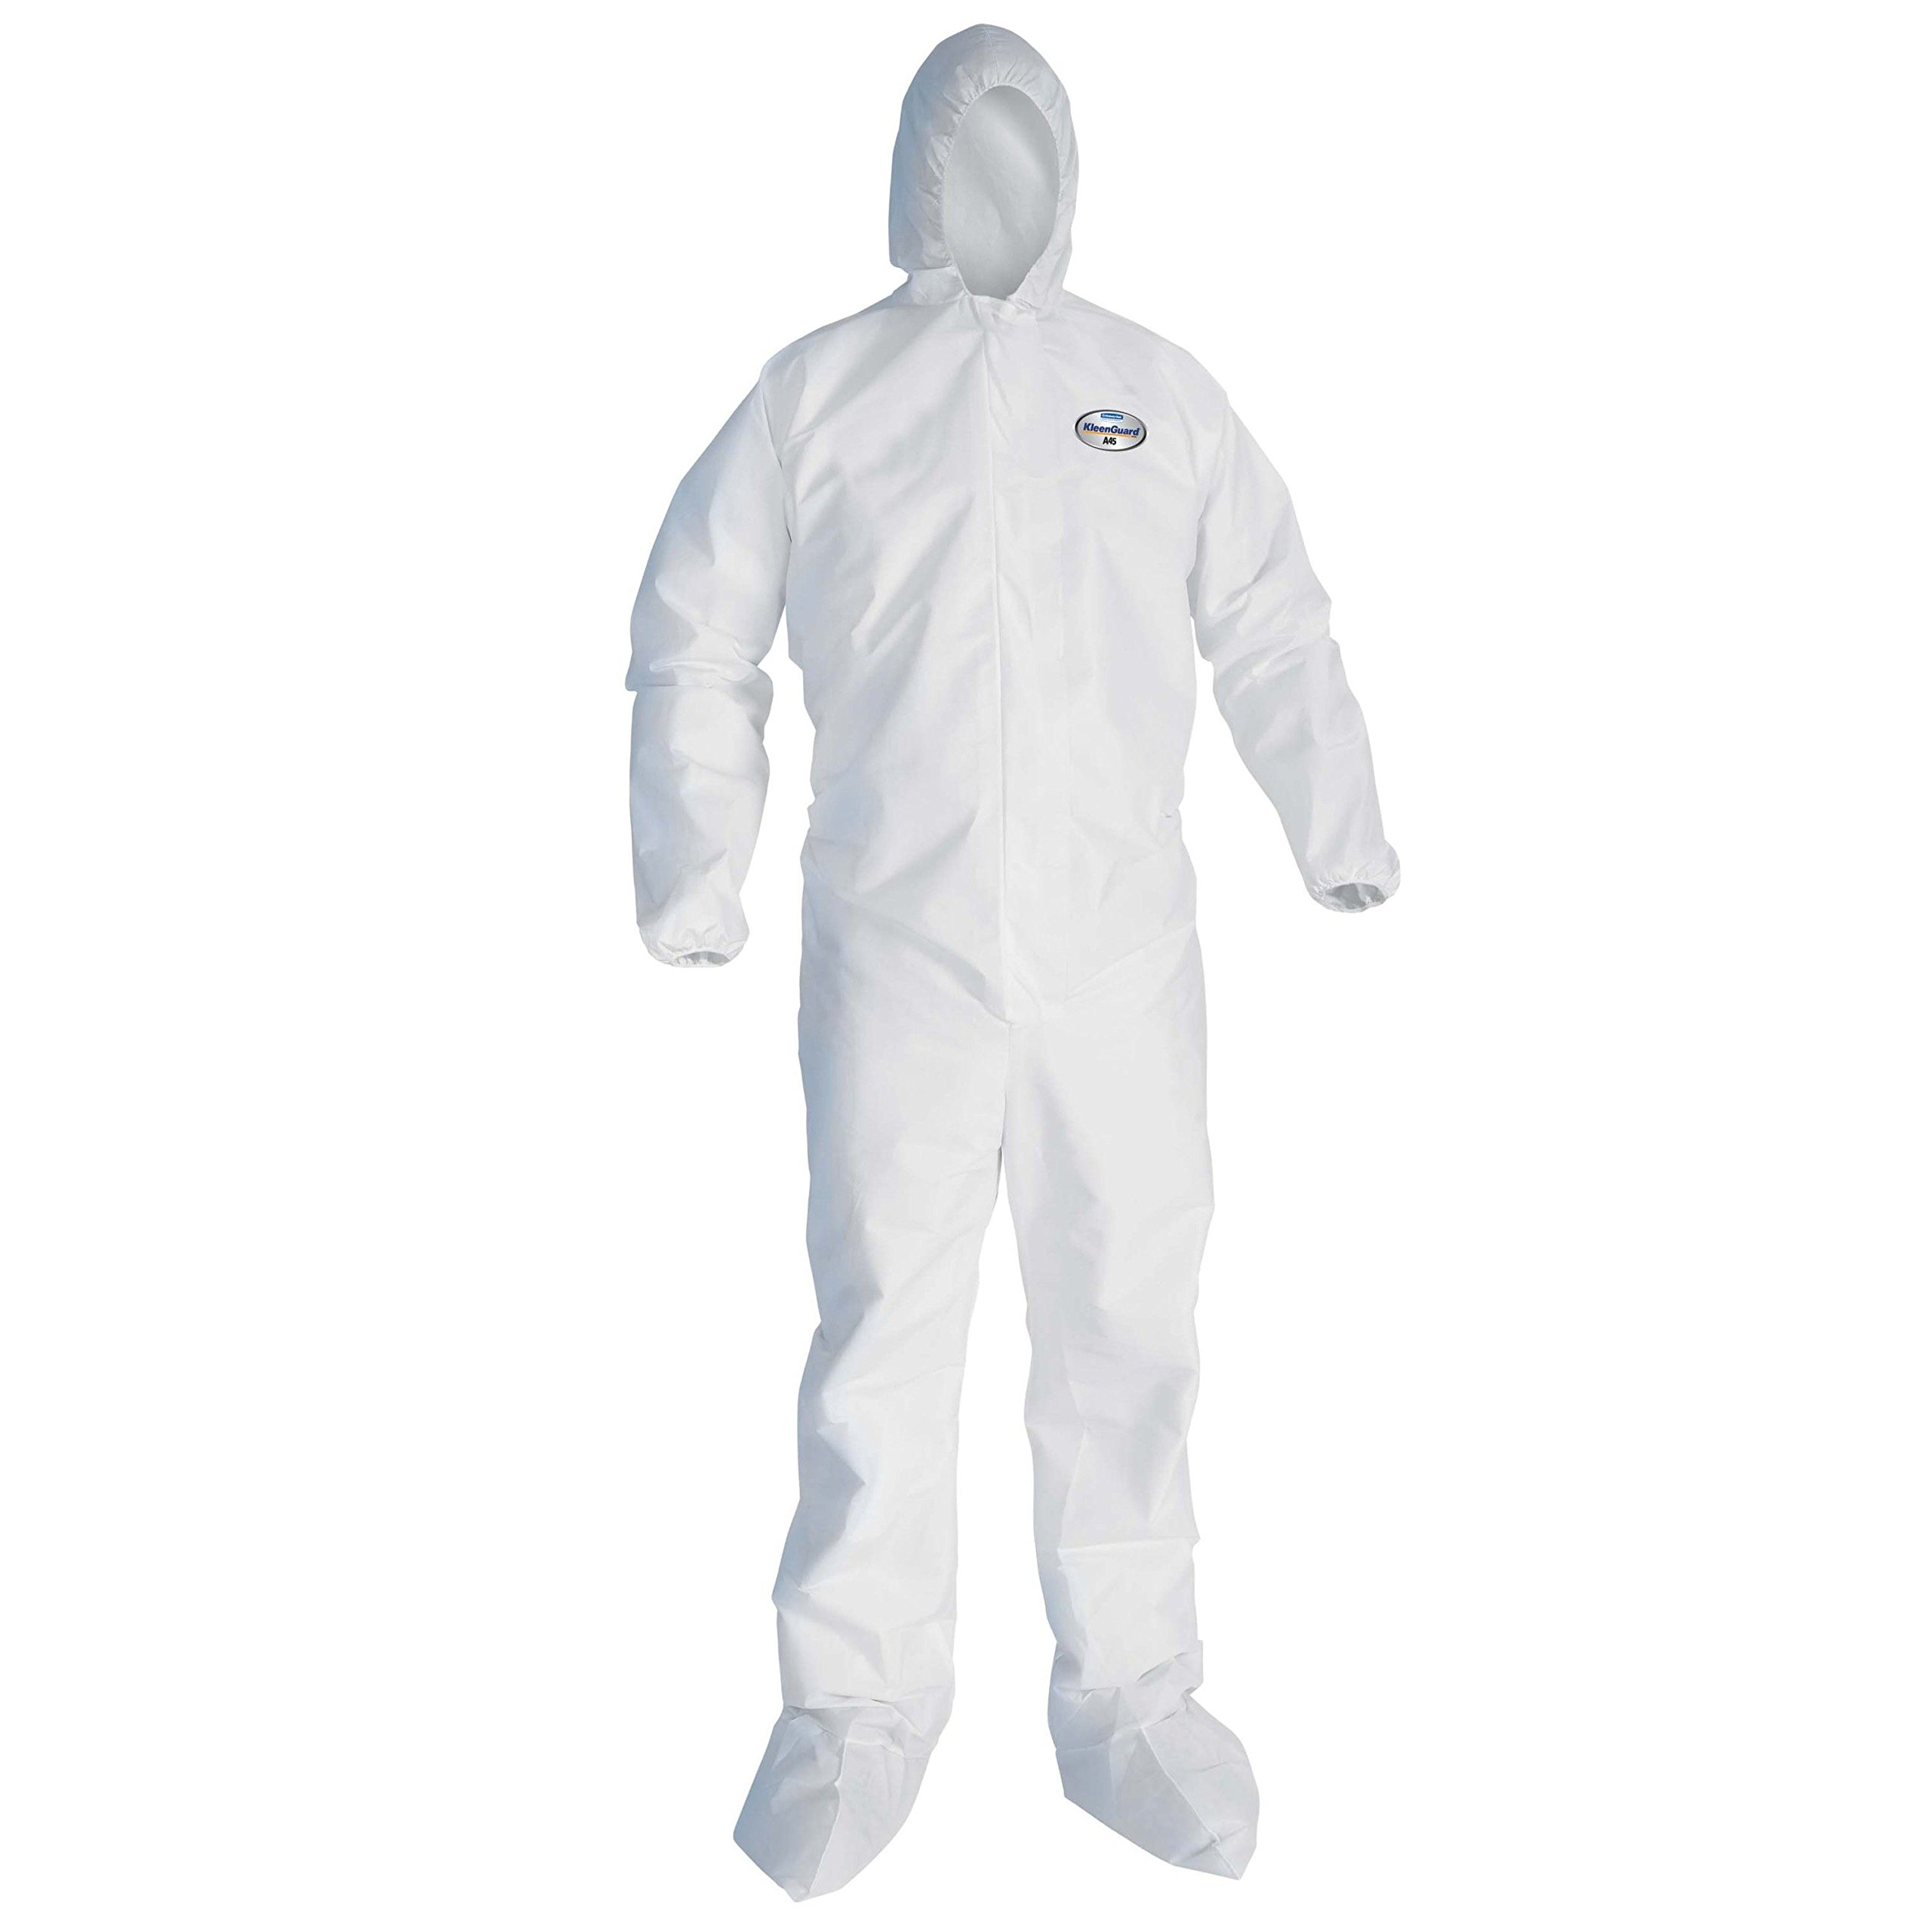 Kleenguard 41516 A45 Liquid and Particle Protection Surface Prep and Paint Apparel, EWA, Hooded, Booted, X-Large, White (Pack of 25)